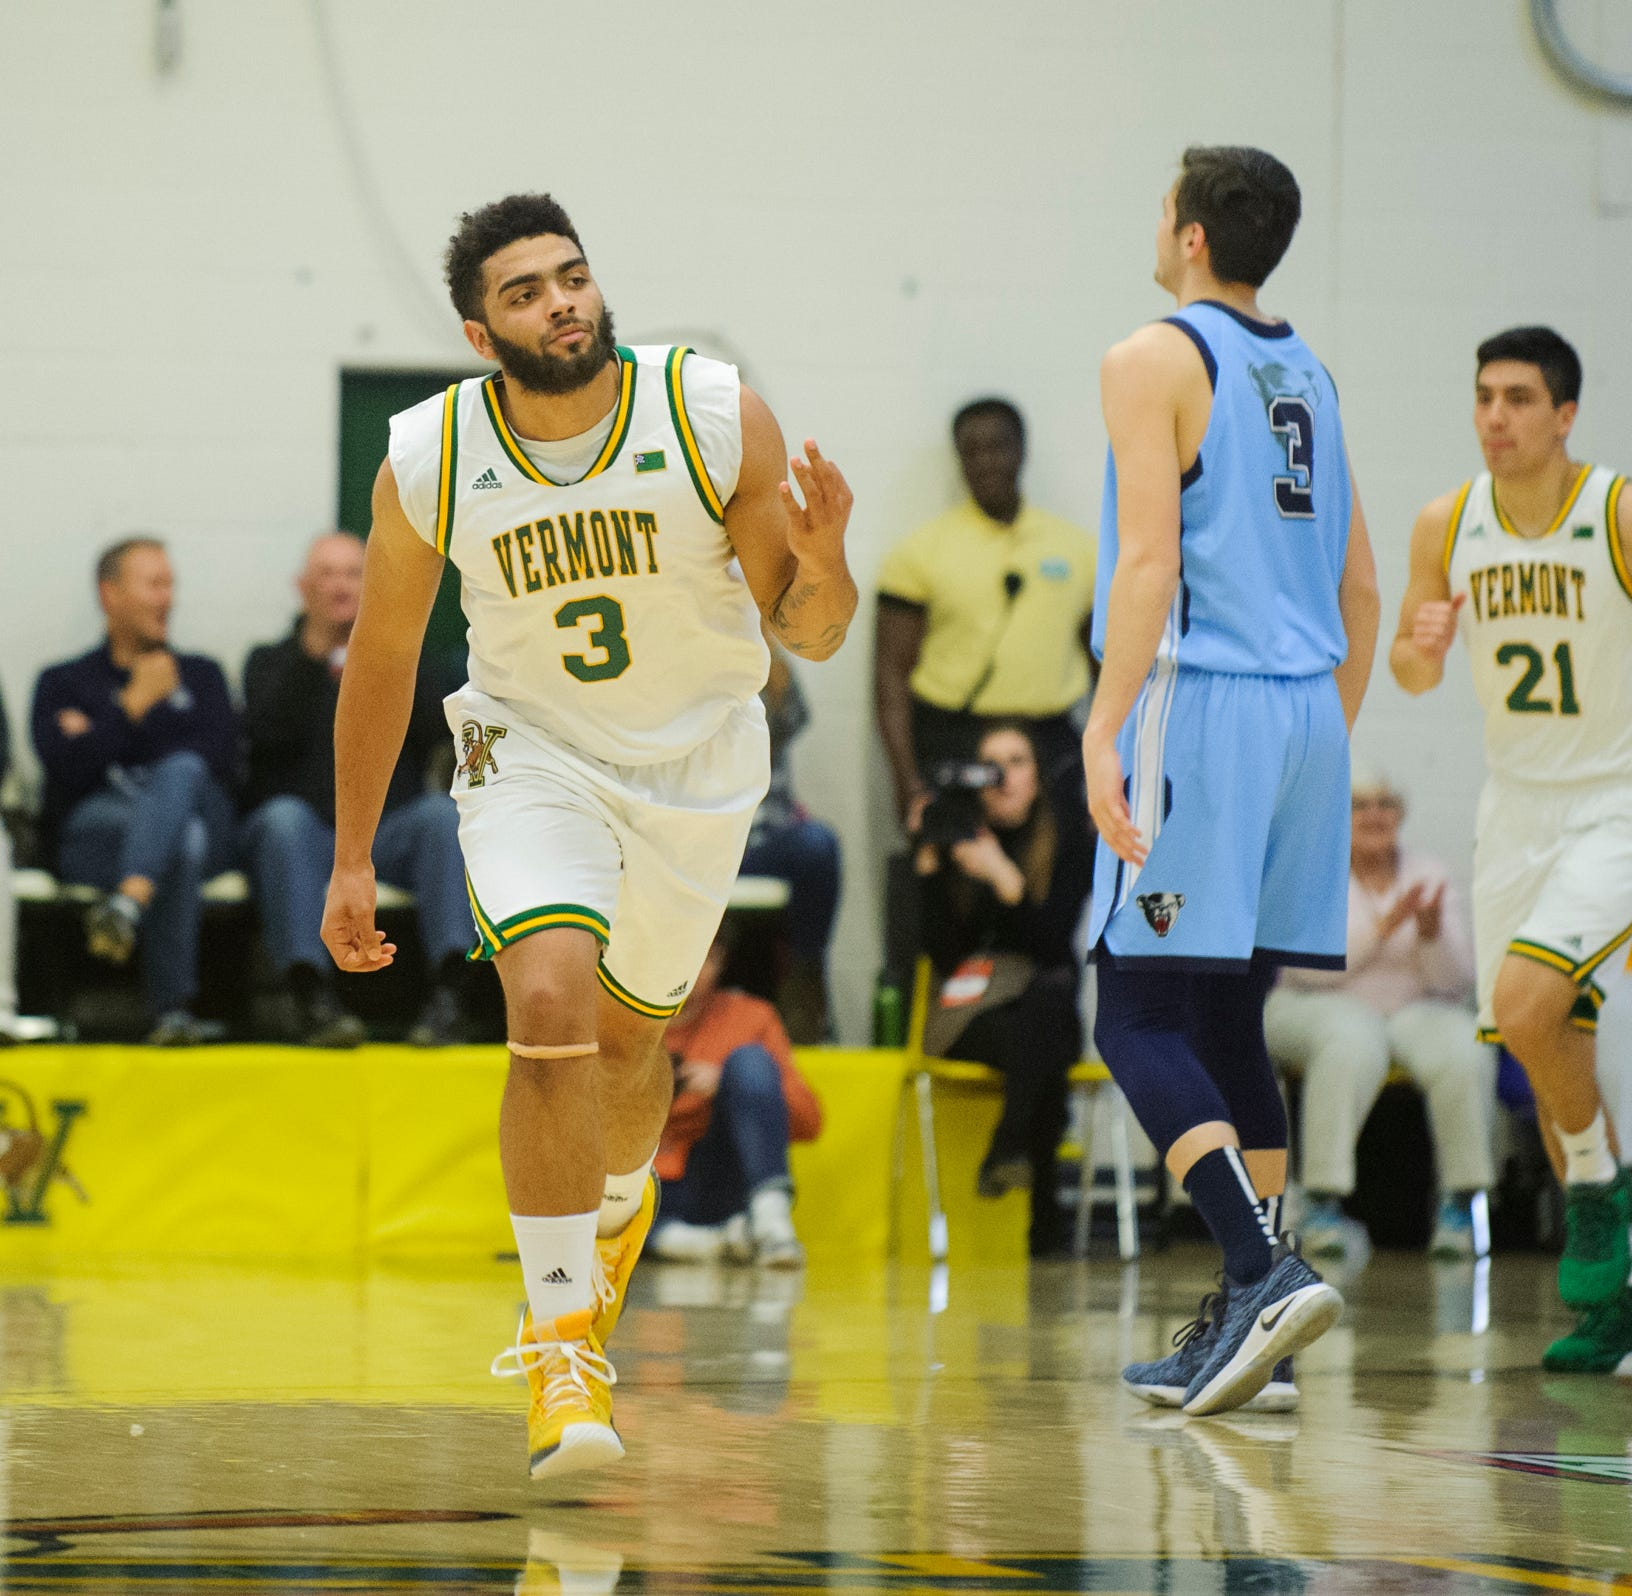 Lamb drops 34 points as UVM basketball ousts Maine in America East quarterfinals